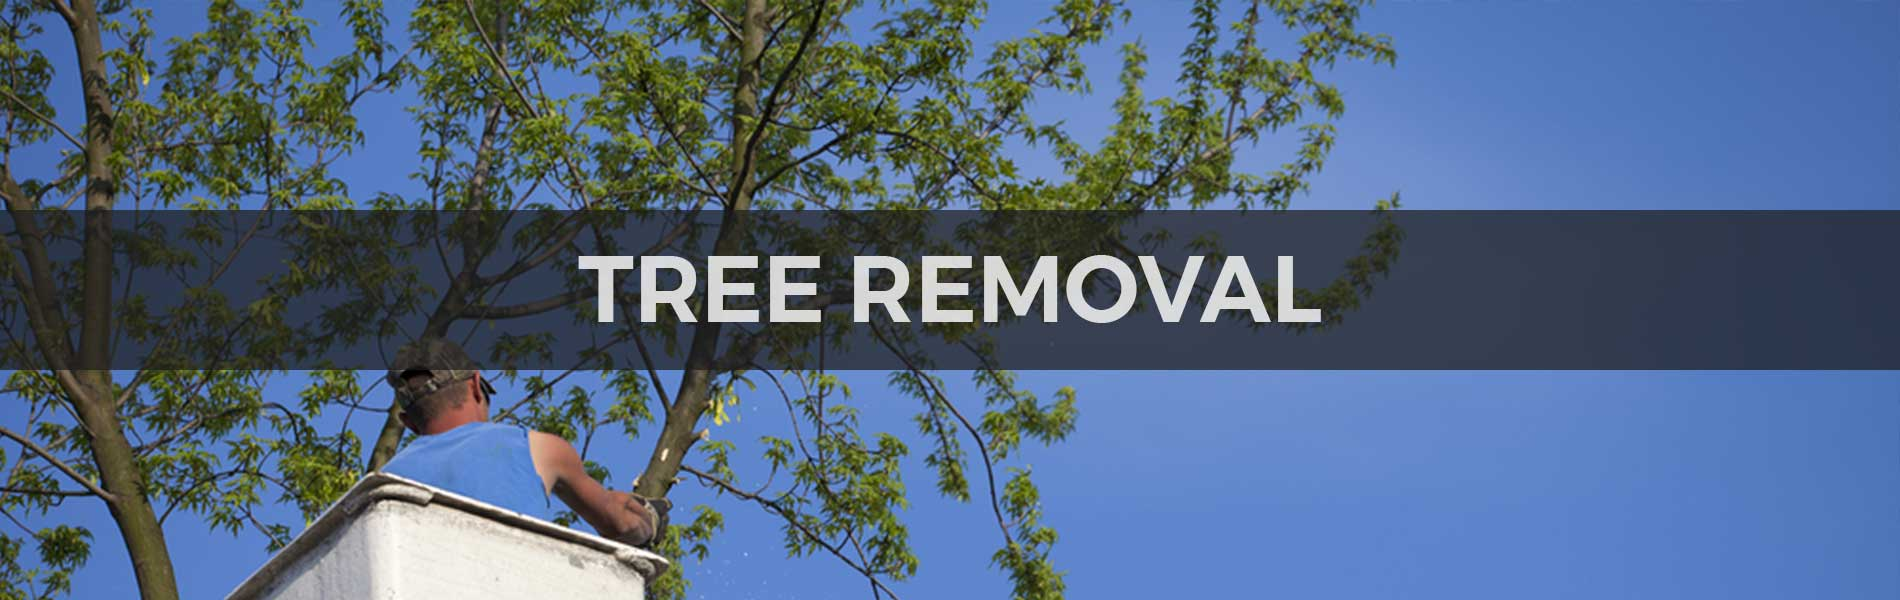 What is the certified arborist? And why should I hire them for best tree care?